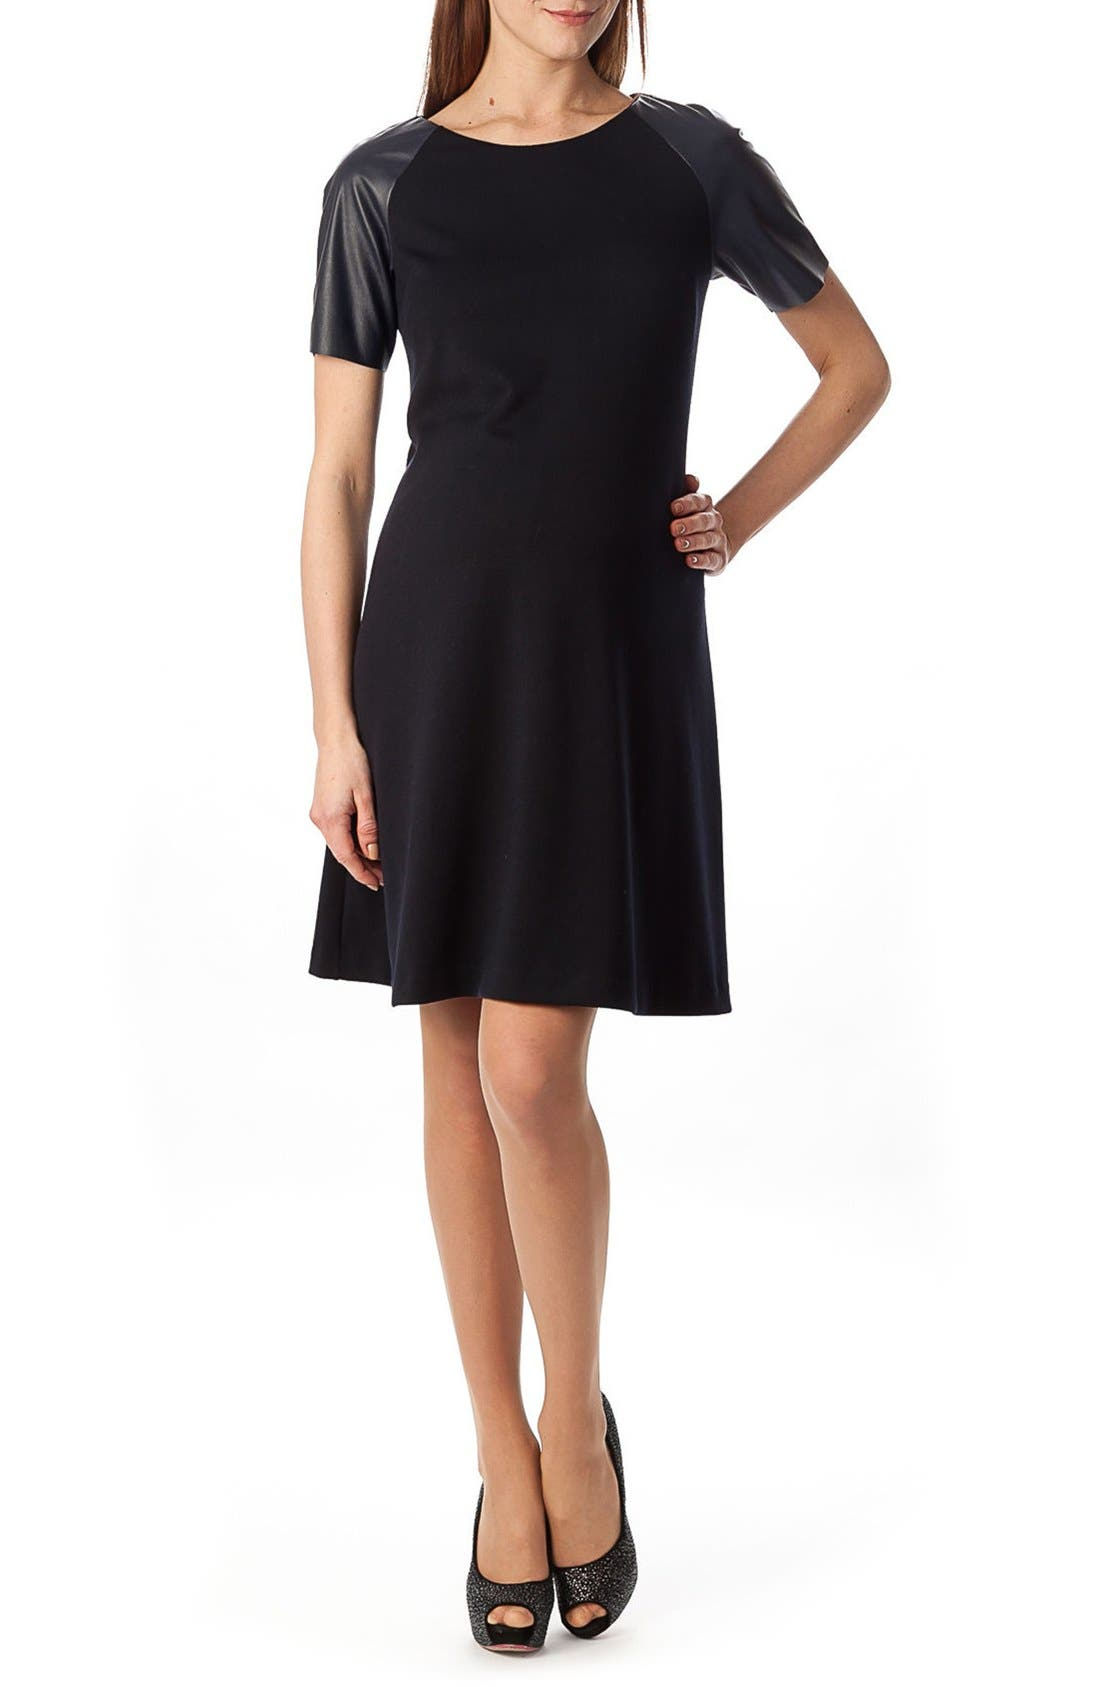 'Knightsbridge' A Line Maternity Dress,                             Main thumbnail 1, color,                             410